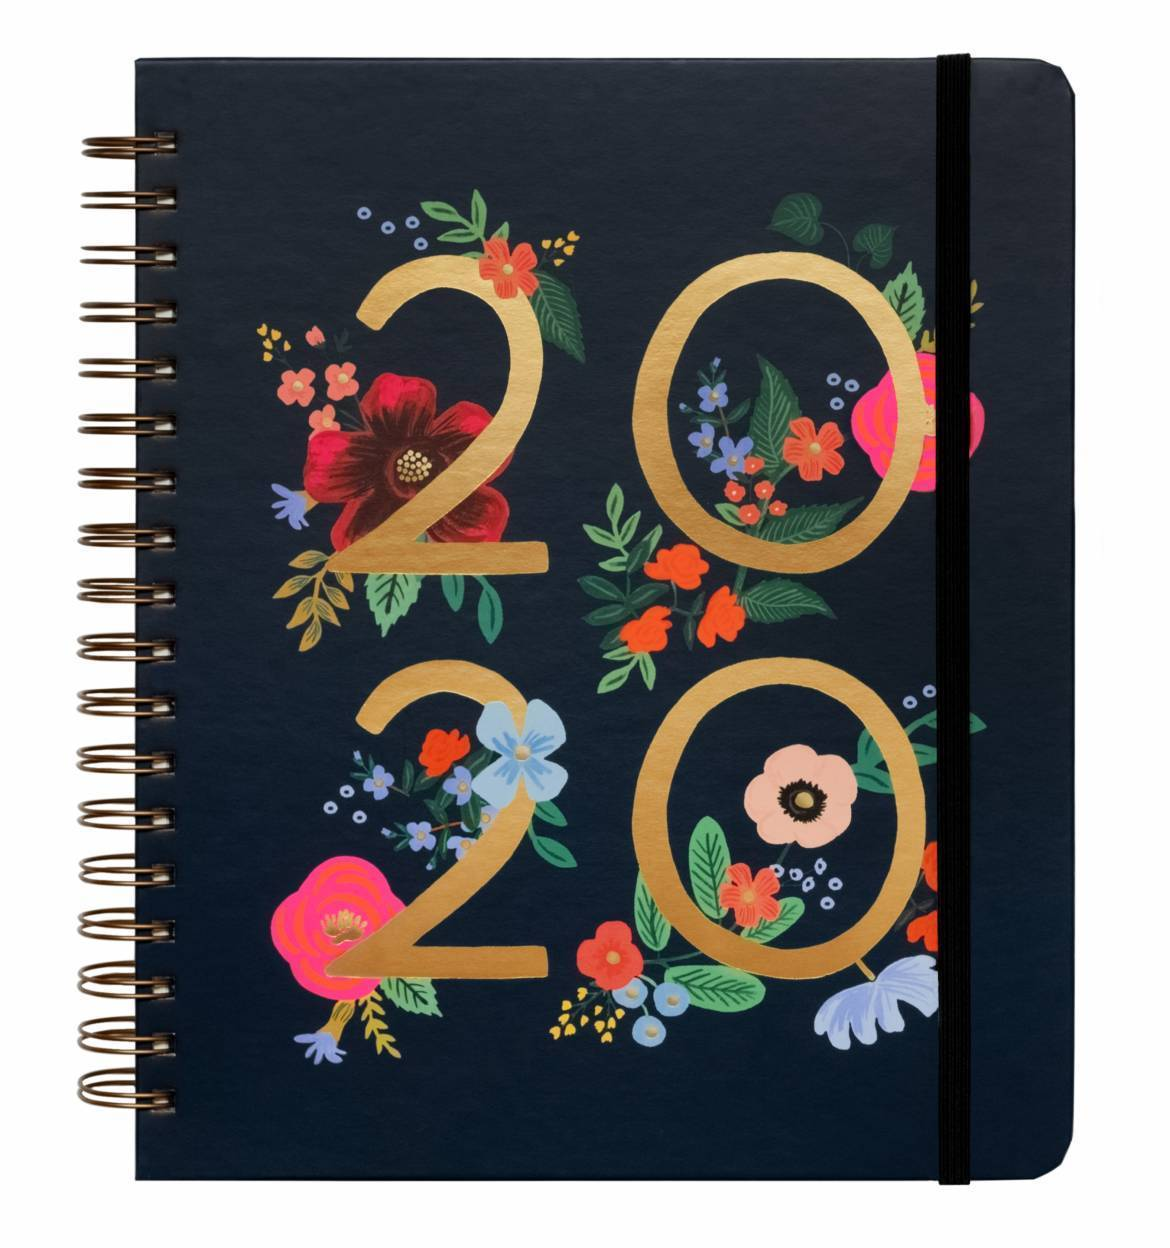 Spiral bound notebook with navy background and 2020 gold foil title and colourful flowers